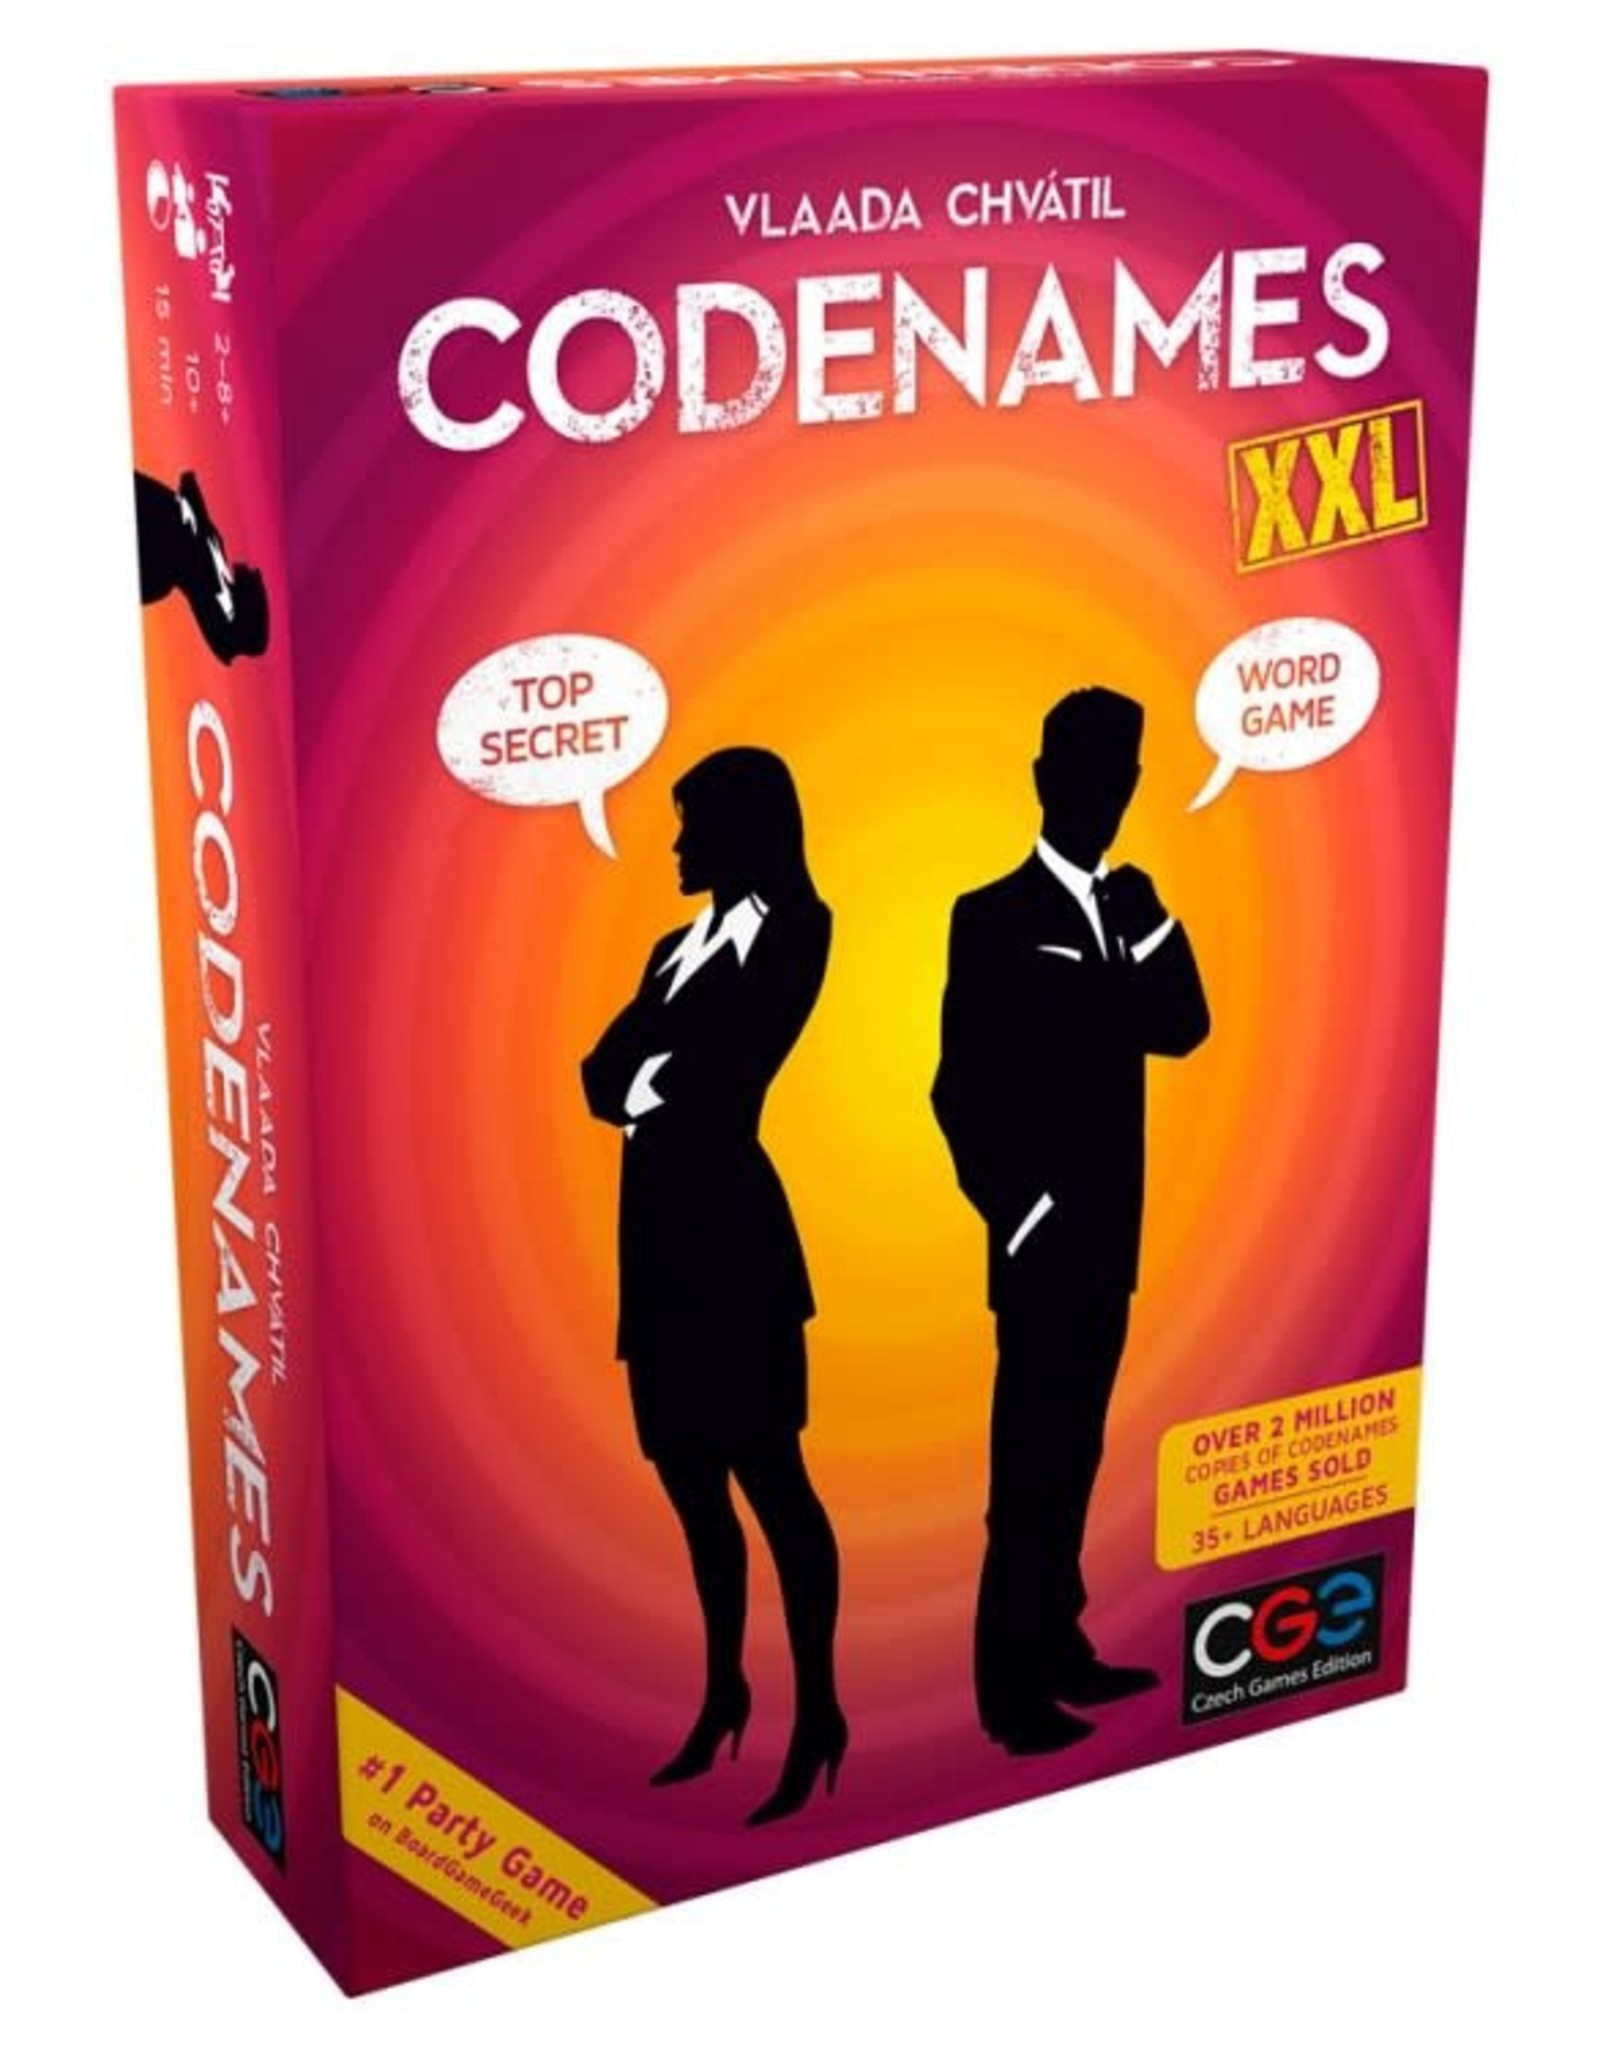 Czech Games Edition Codenames: XXL